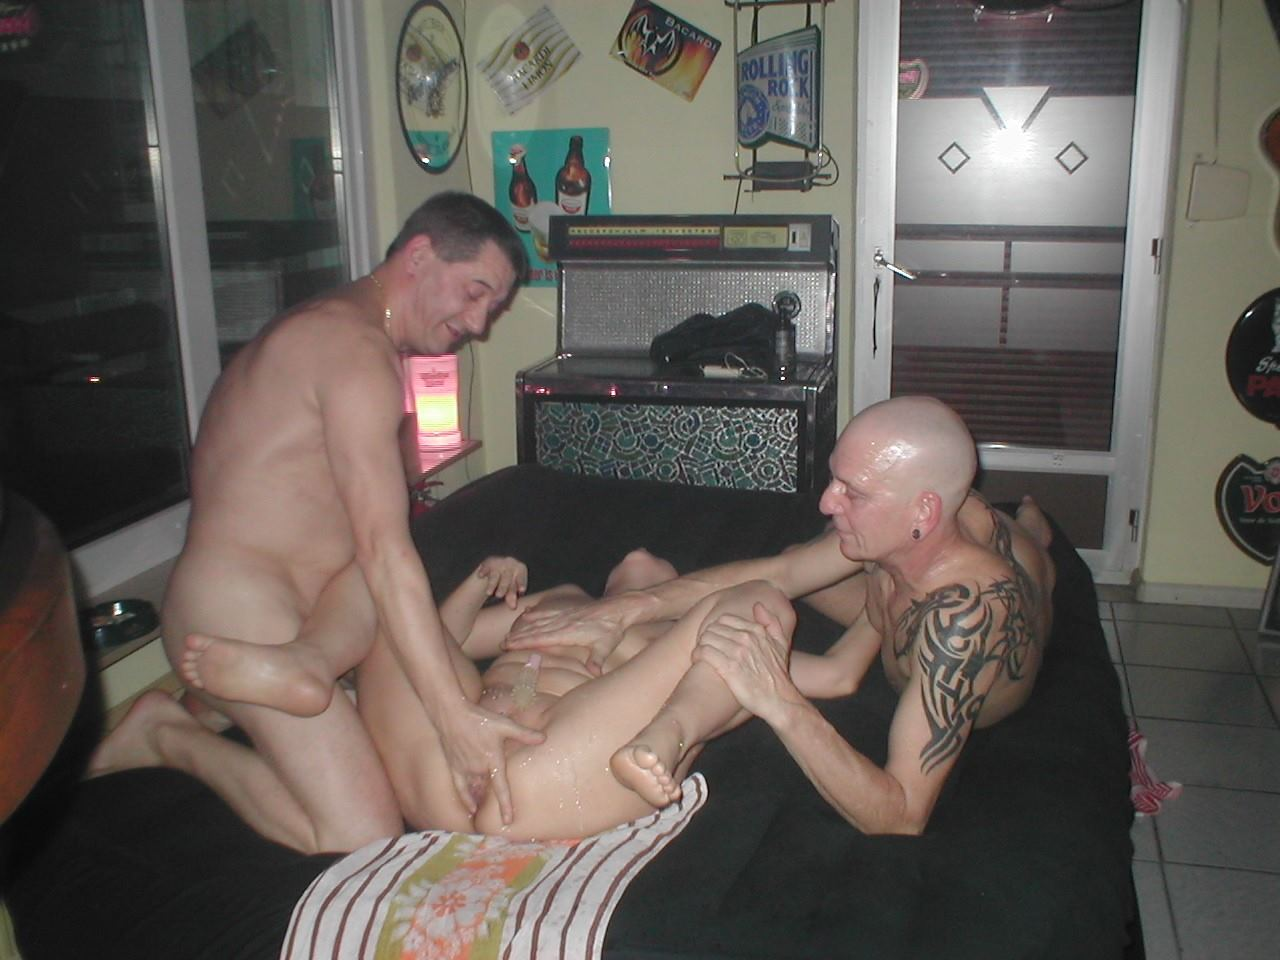 pictures showing for amateur swinger sex party - www.tophardcoreporn